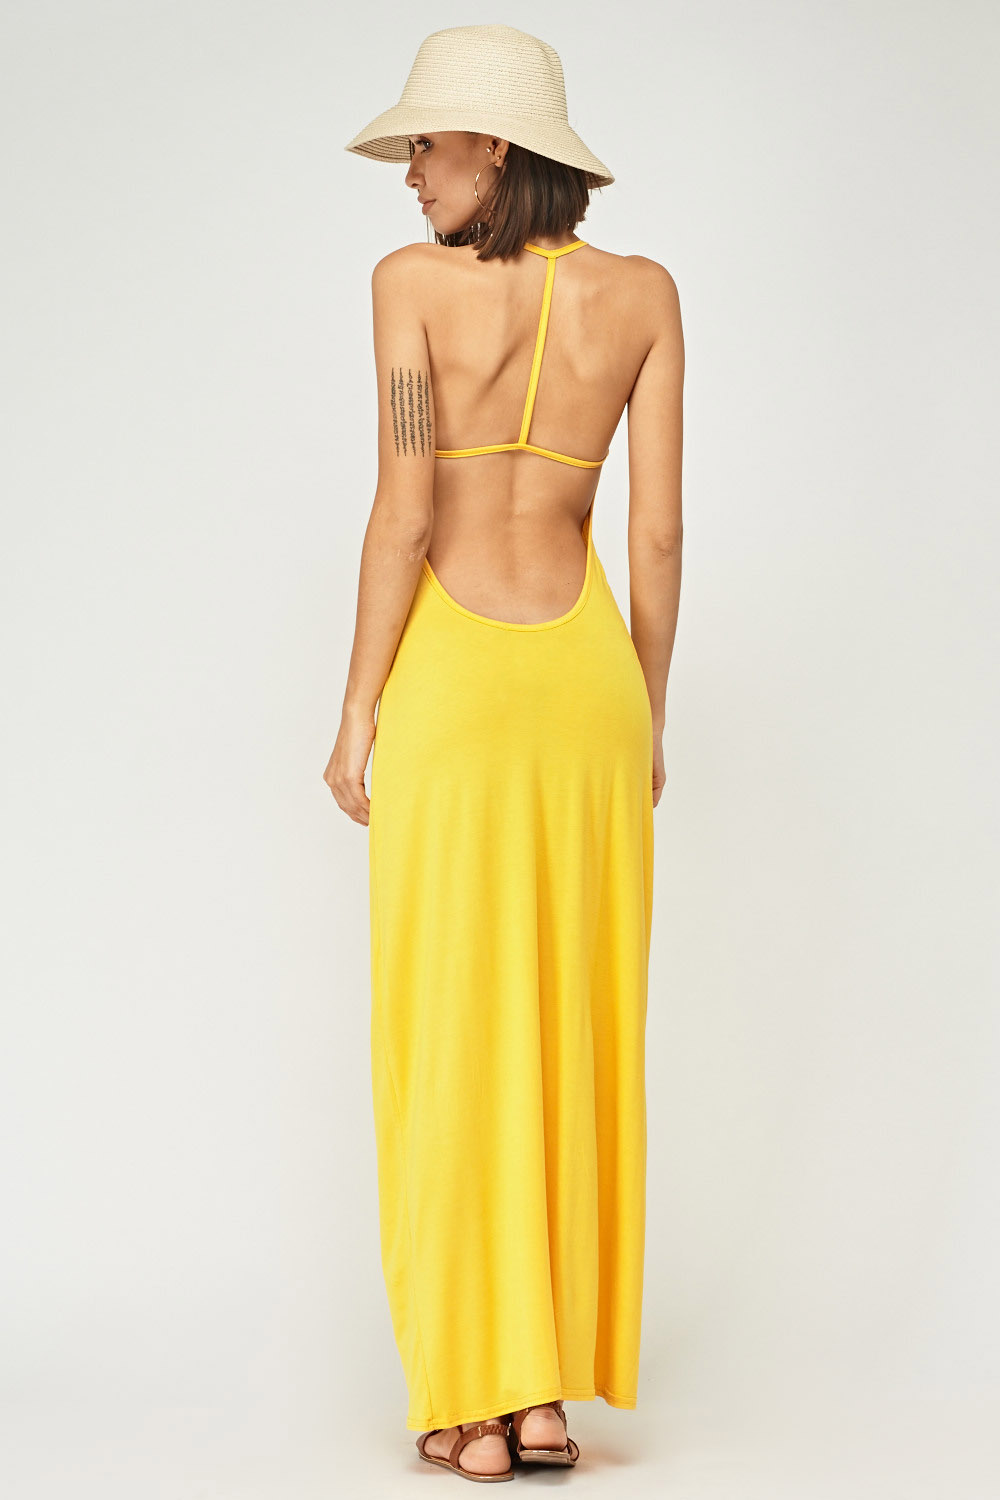 d80bedd6c4 Strappy Back Yellow Maxi Dress - Just £5